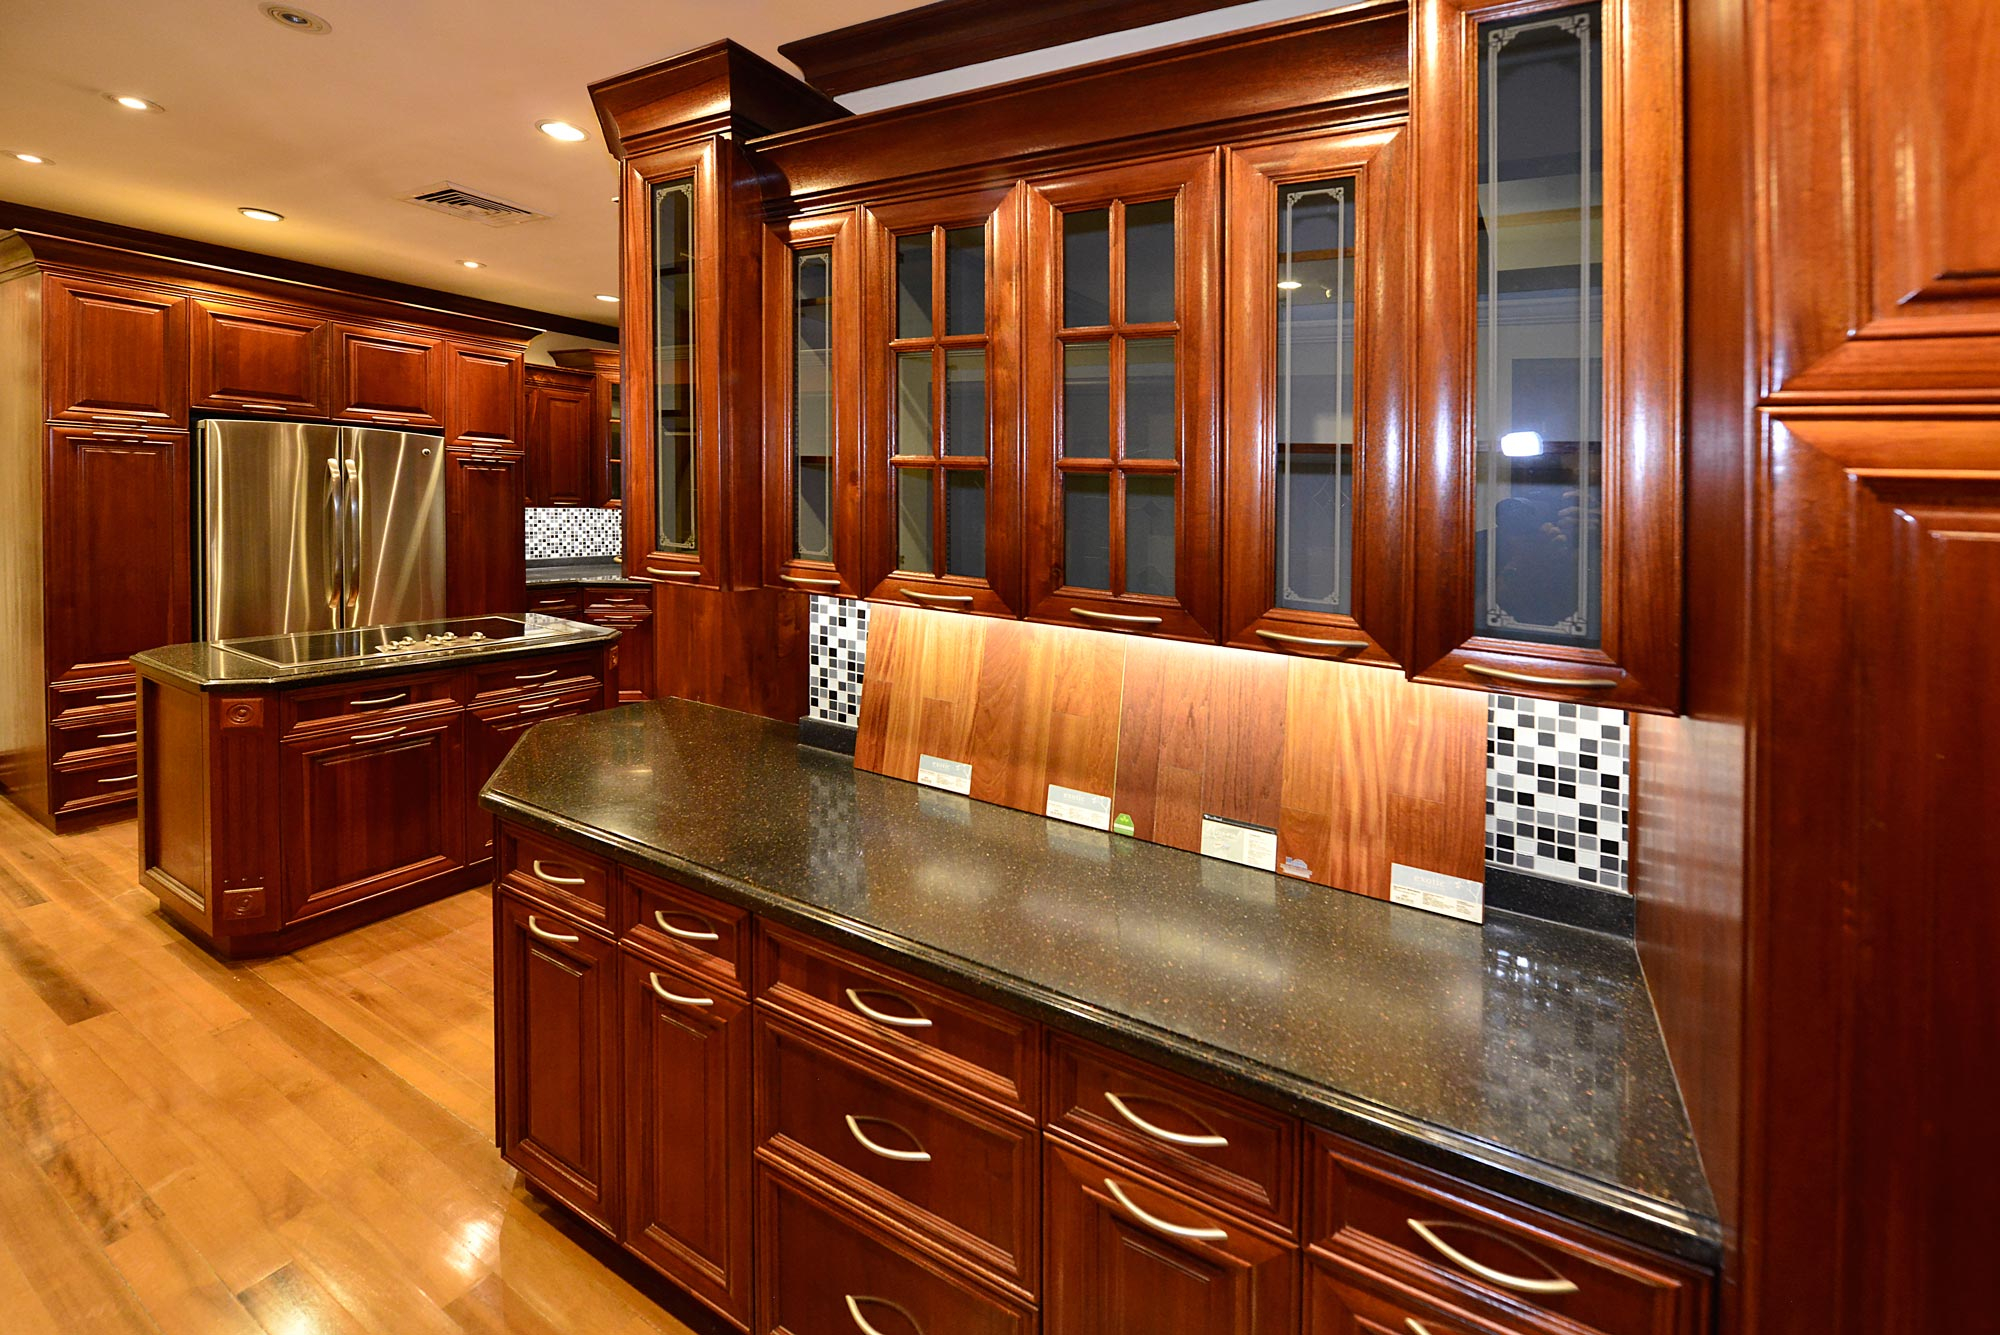 Kitchen Cabinetry Products Unique Woodworking Trinidad Ltd In within sizing 2000 X 1335